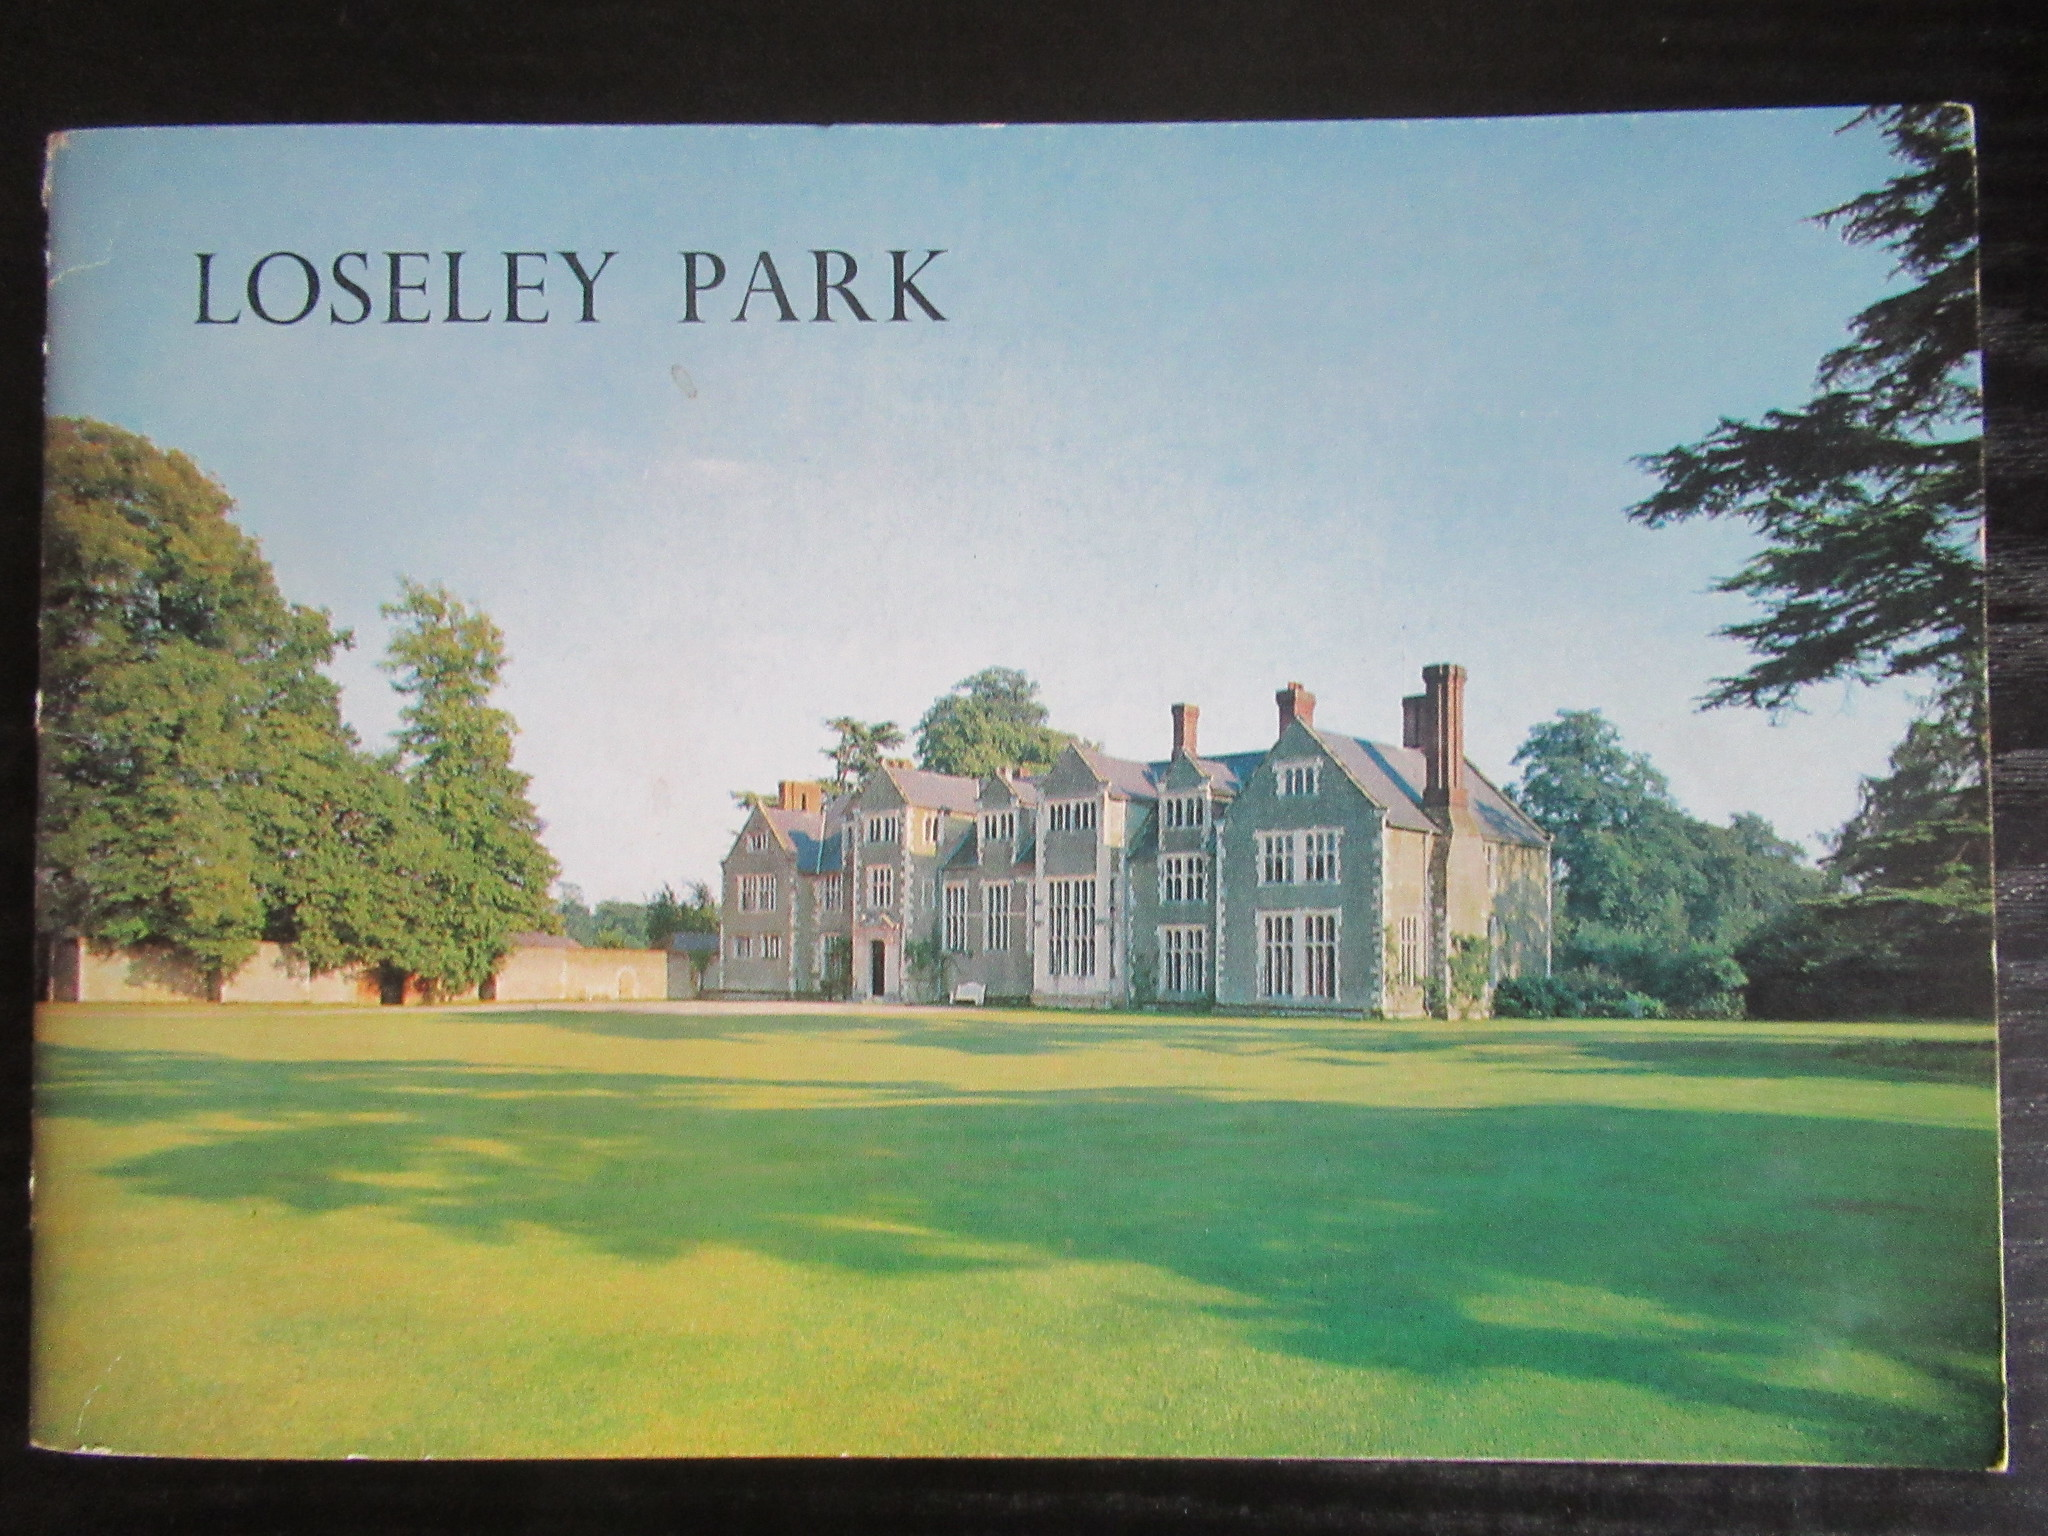 The doors of Loseley Park gardens re open - London Airport Transfers